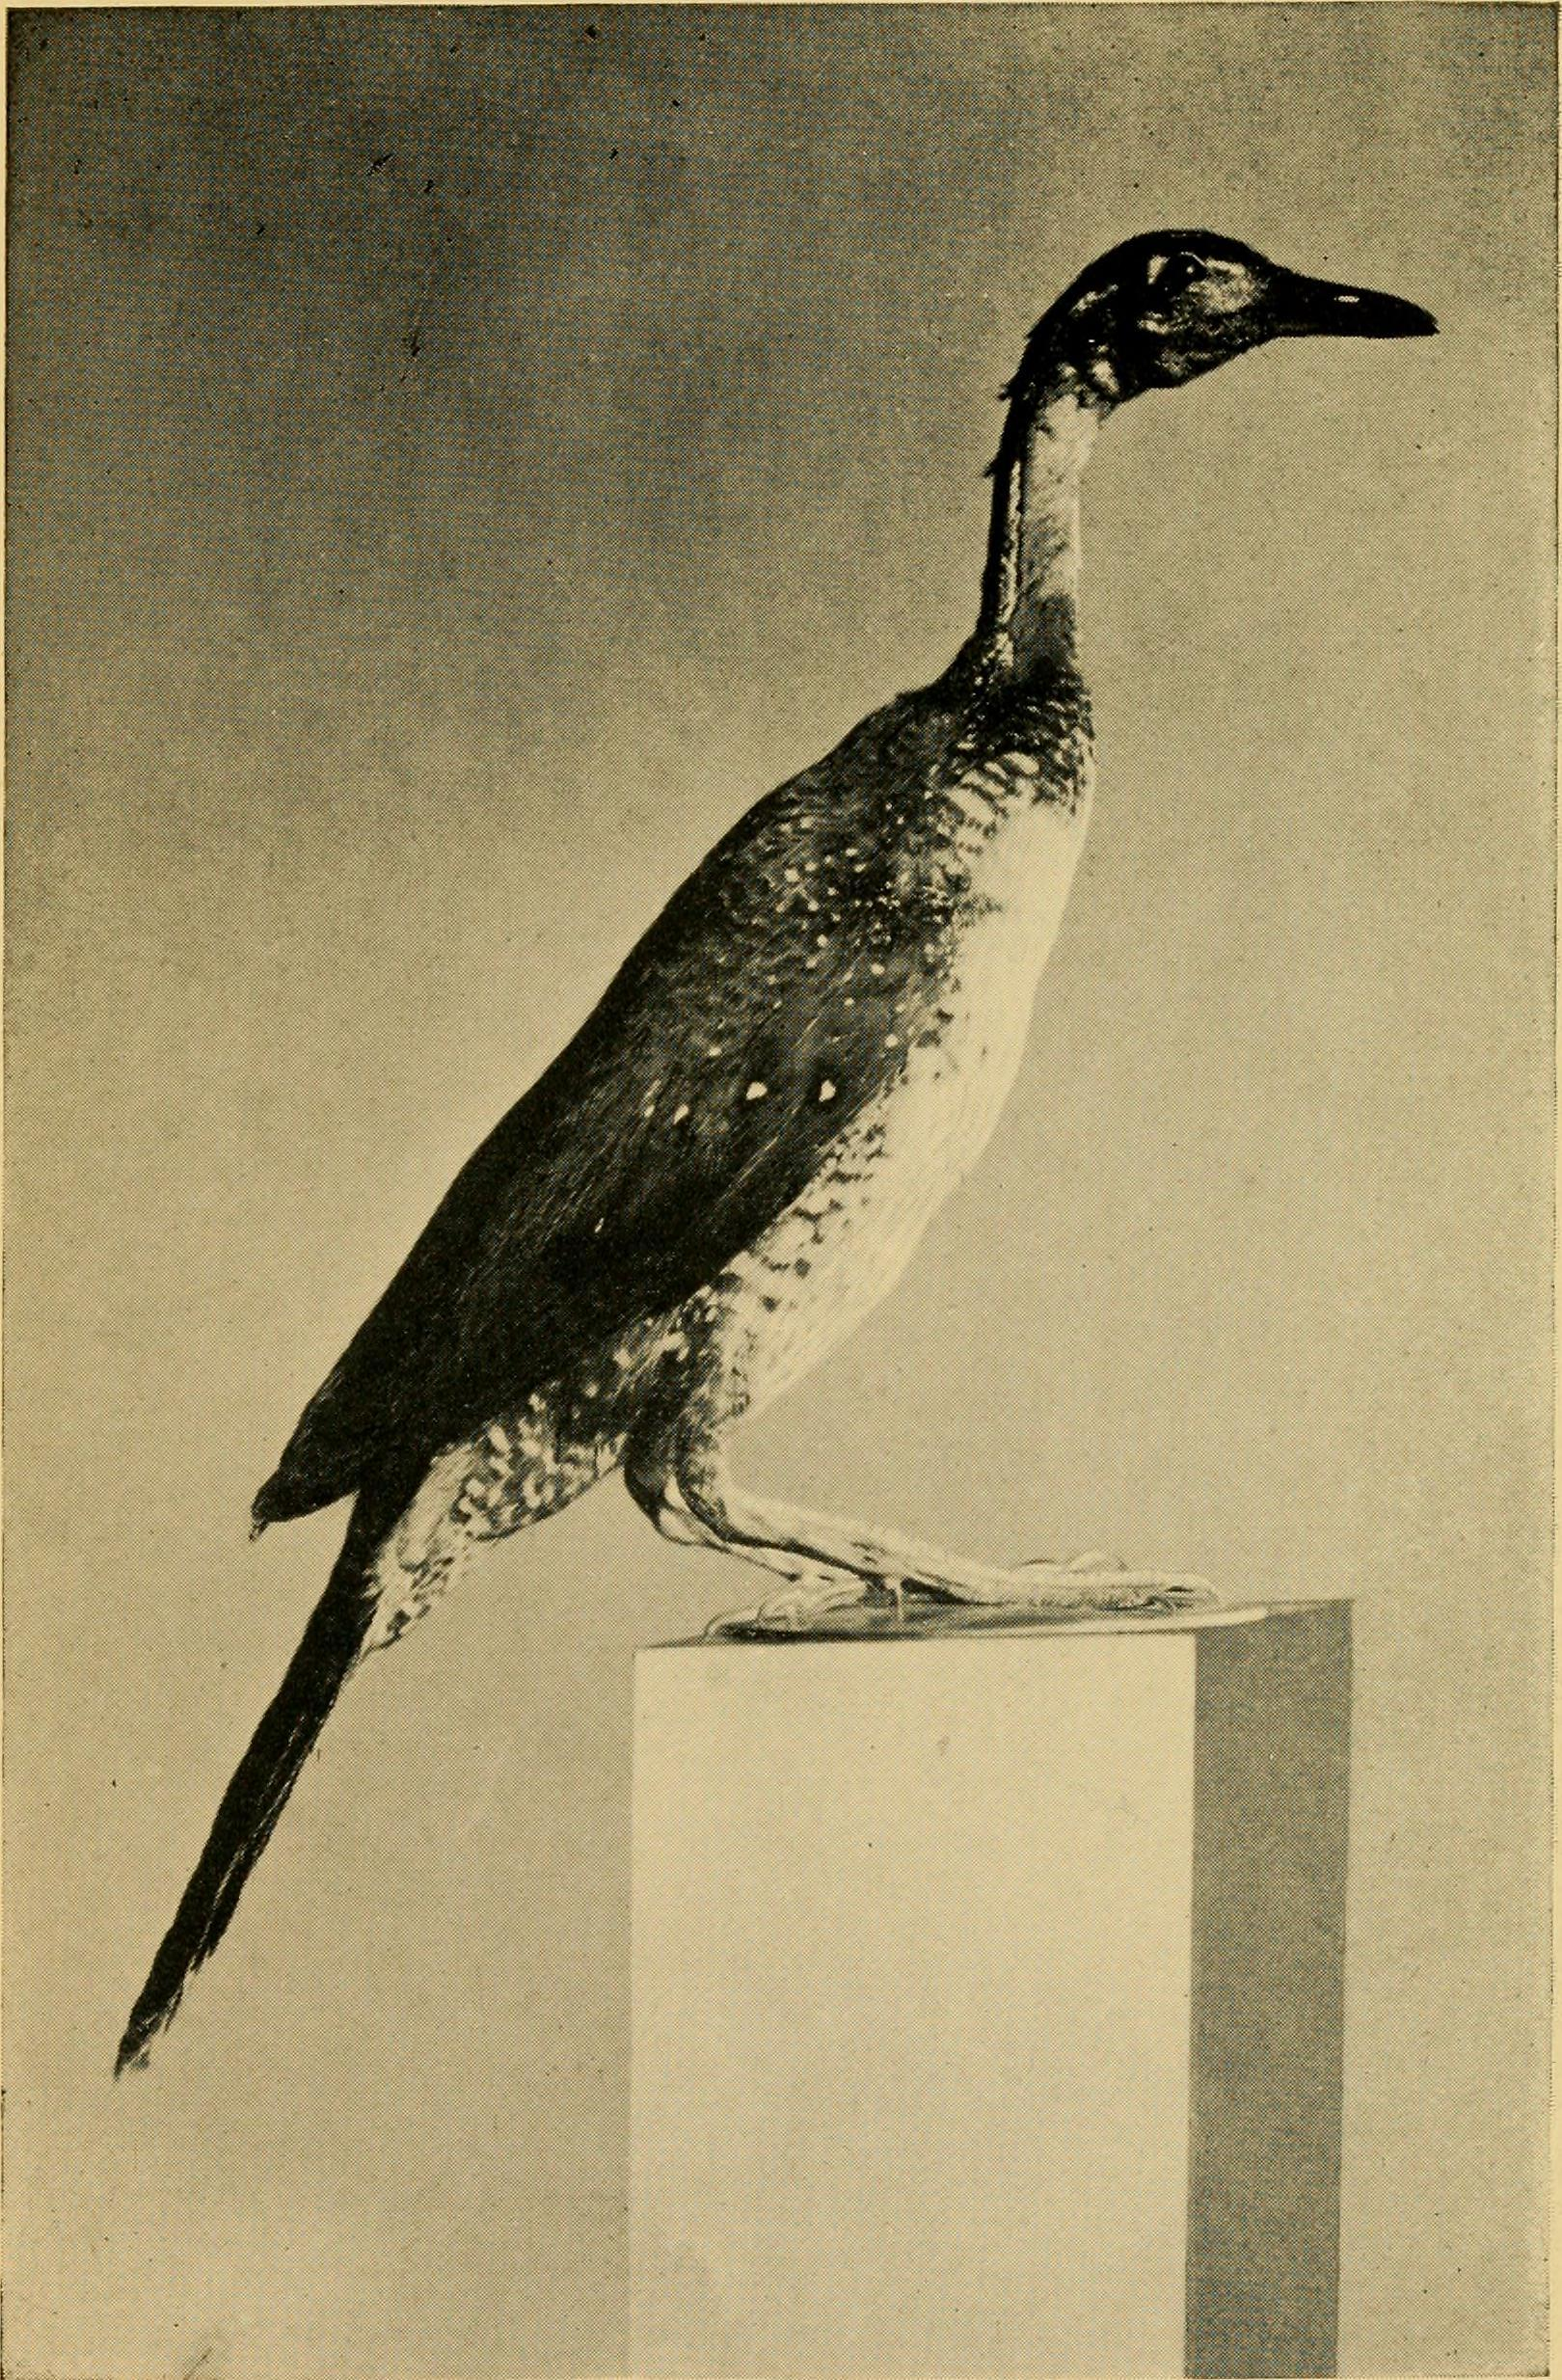 Image of African Finfoot